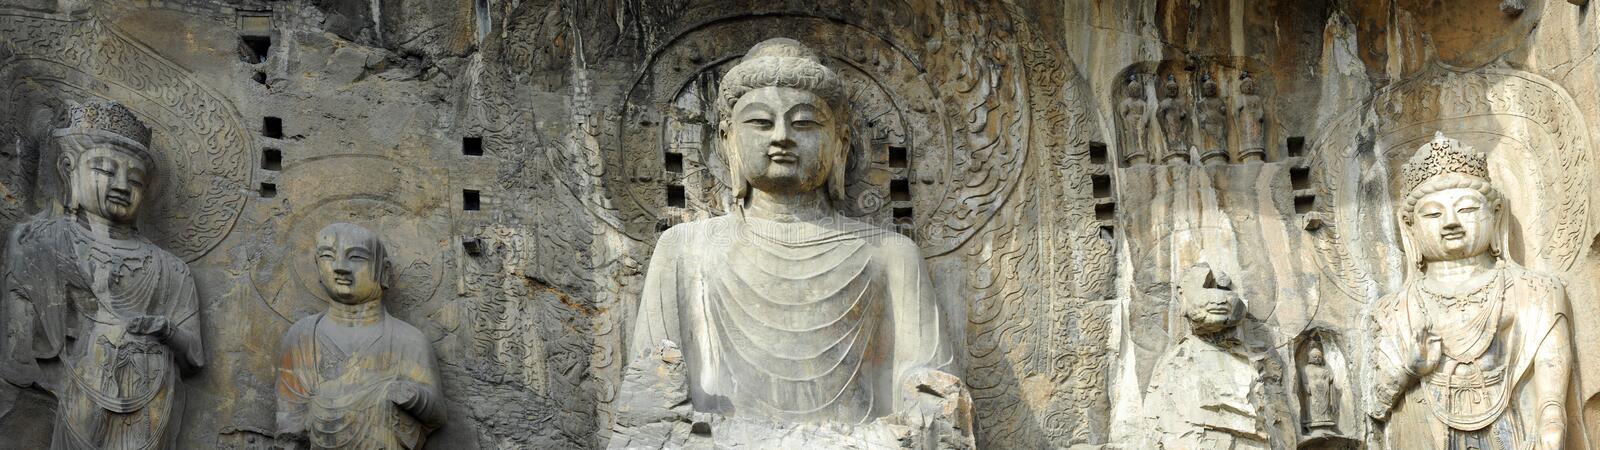 The buddha of Longmen Grottoes in china royalty free stock photo